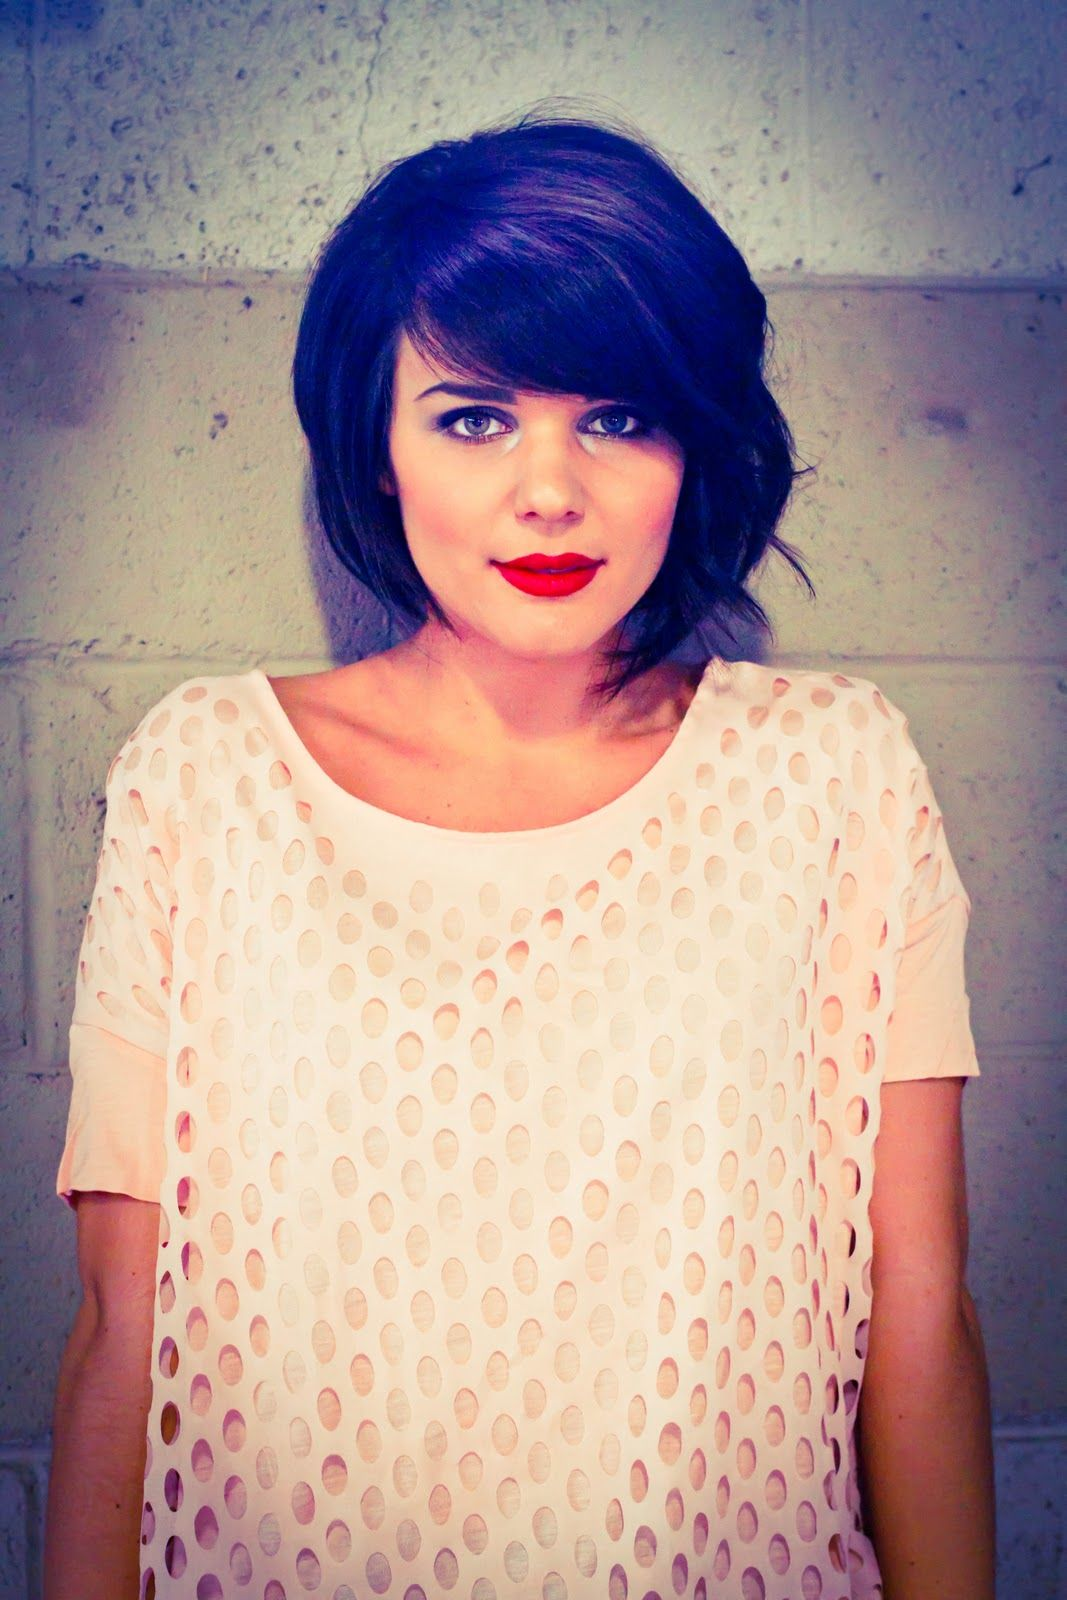 So tempting to cut my hair like this but iuve been growing it for